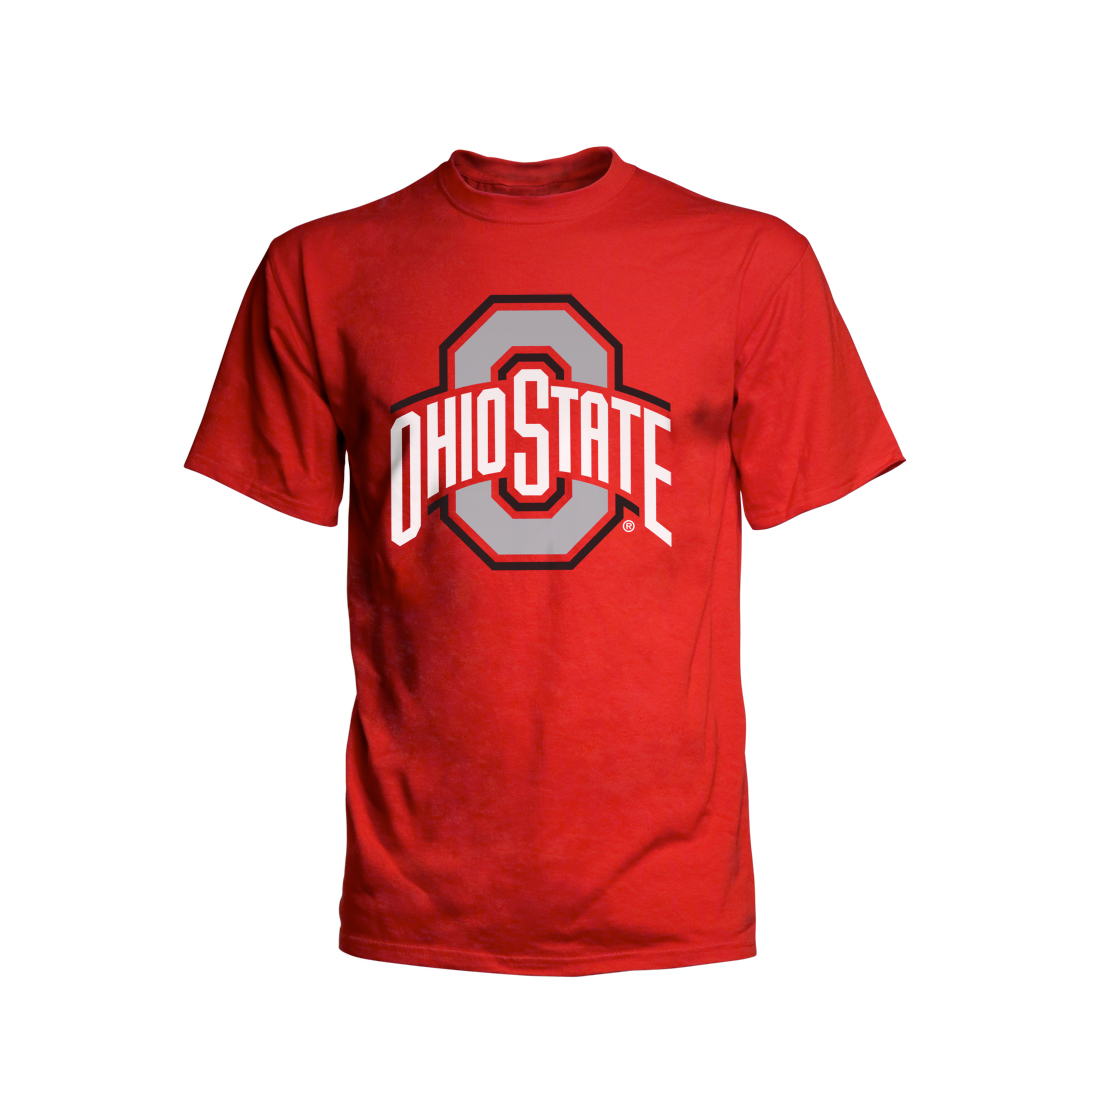 Ohio State Buckeyes Youth Red Tee Shirt